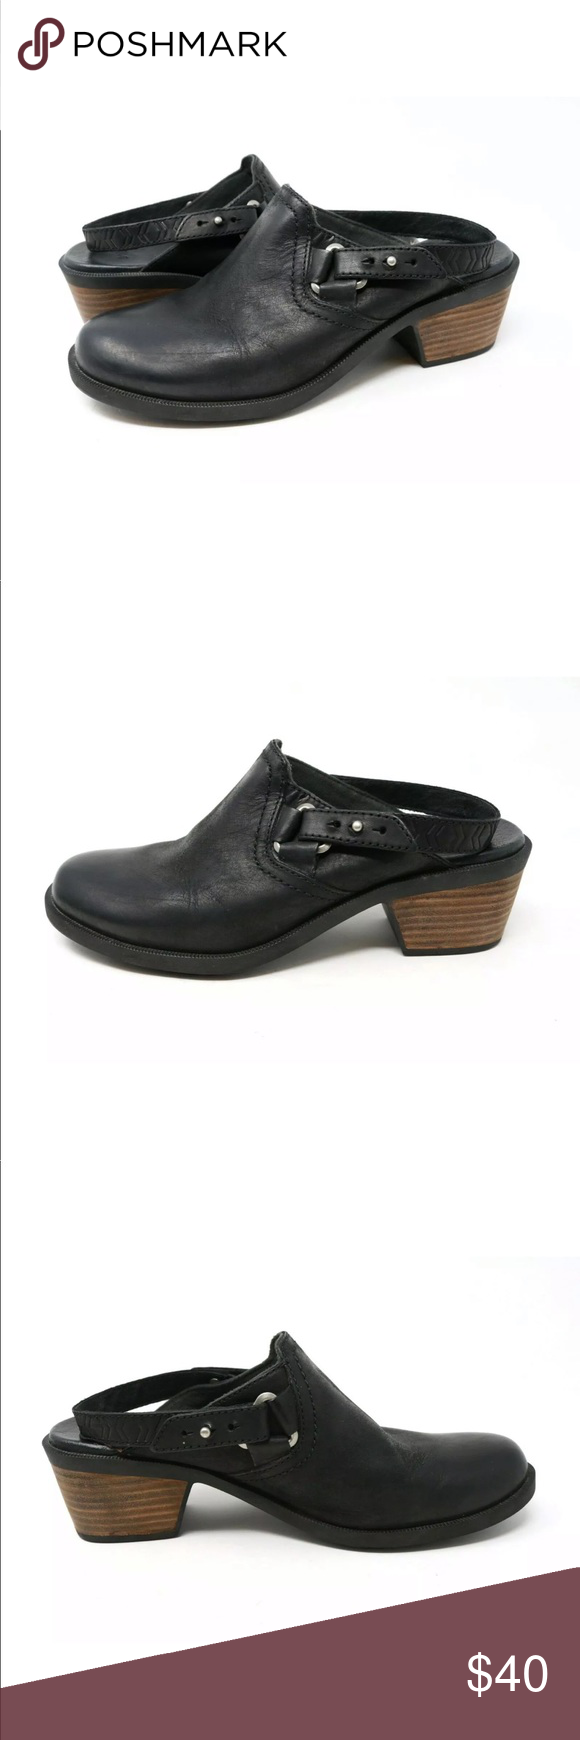 16c02e46c19266 Teva Foxy Slingback Mule Ankle Heel Strap Black Teva Foxy Women s Slingback  Mule Black Leather Ankle Heel Strap 1013674 Excellent preowned condition.